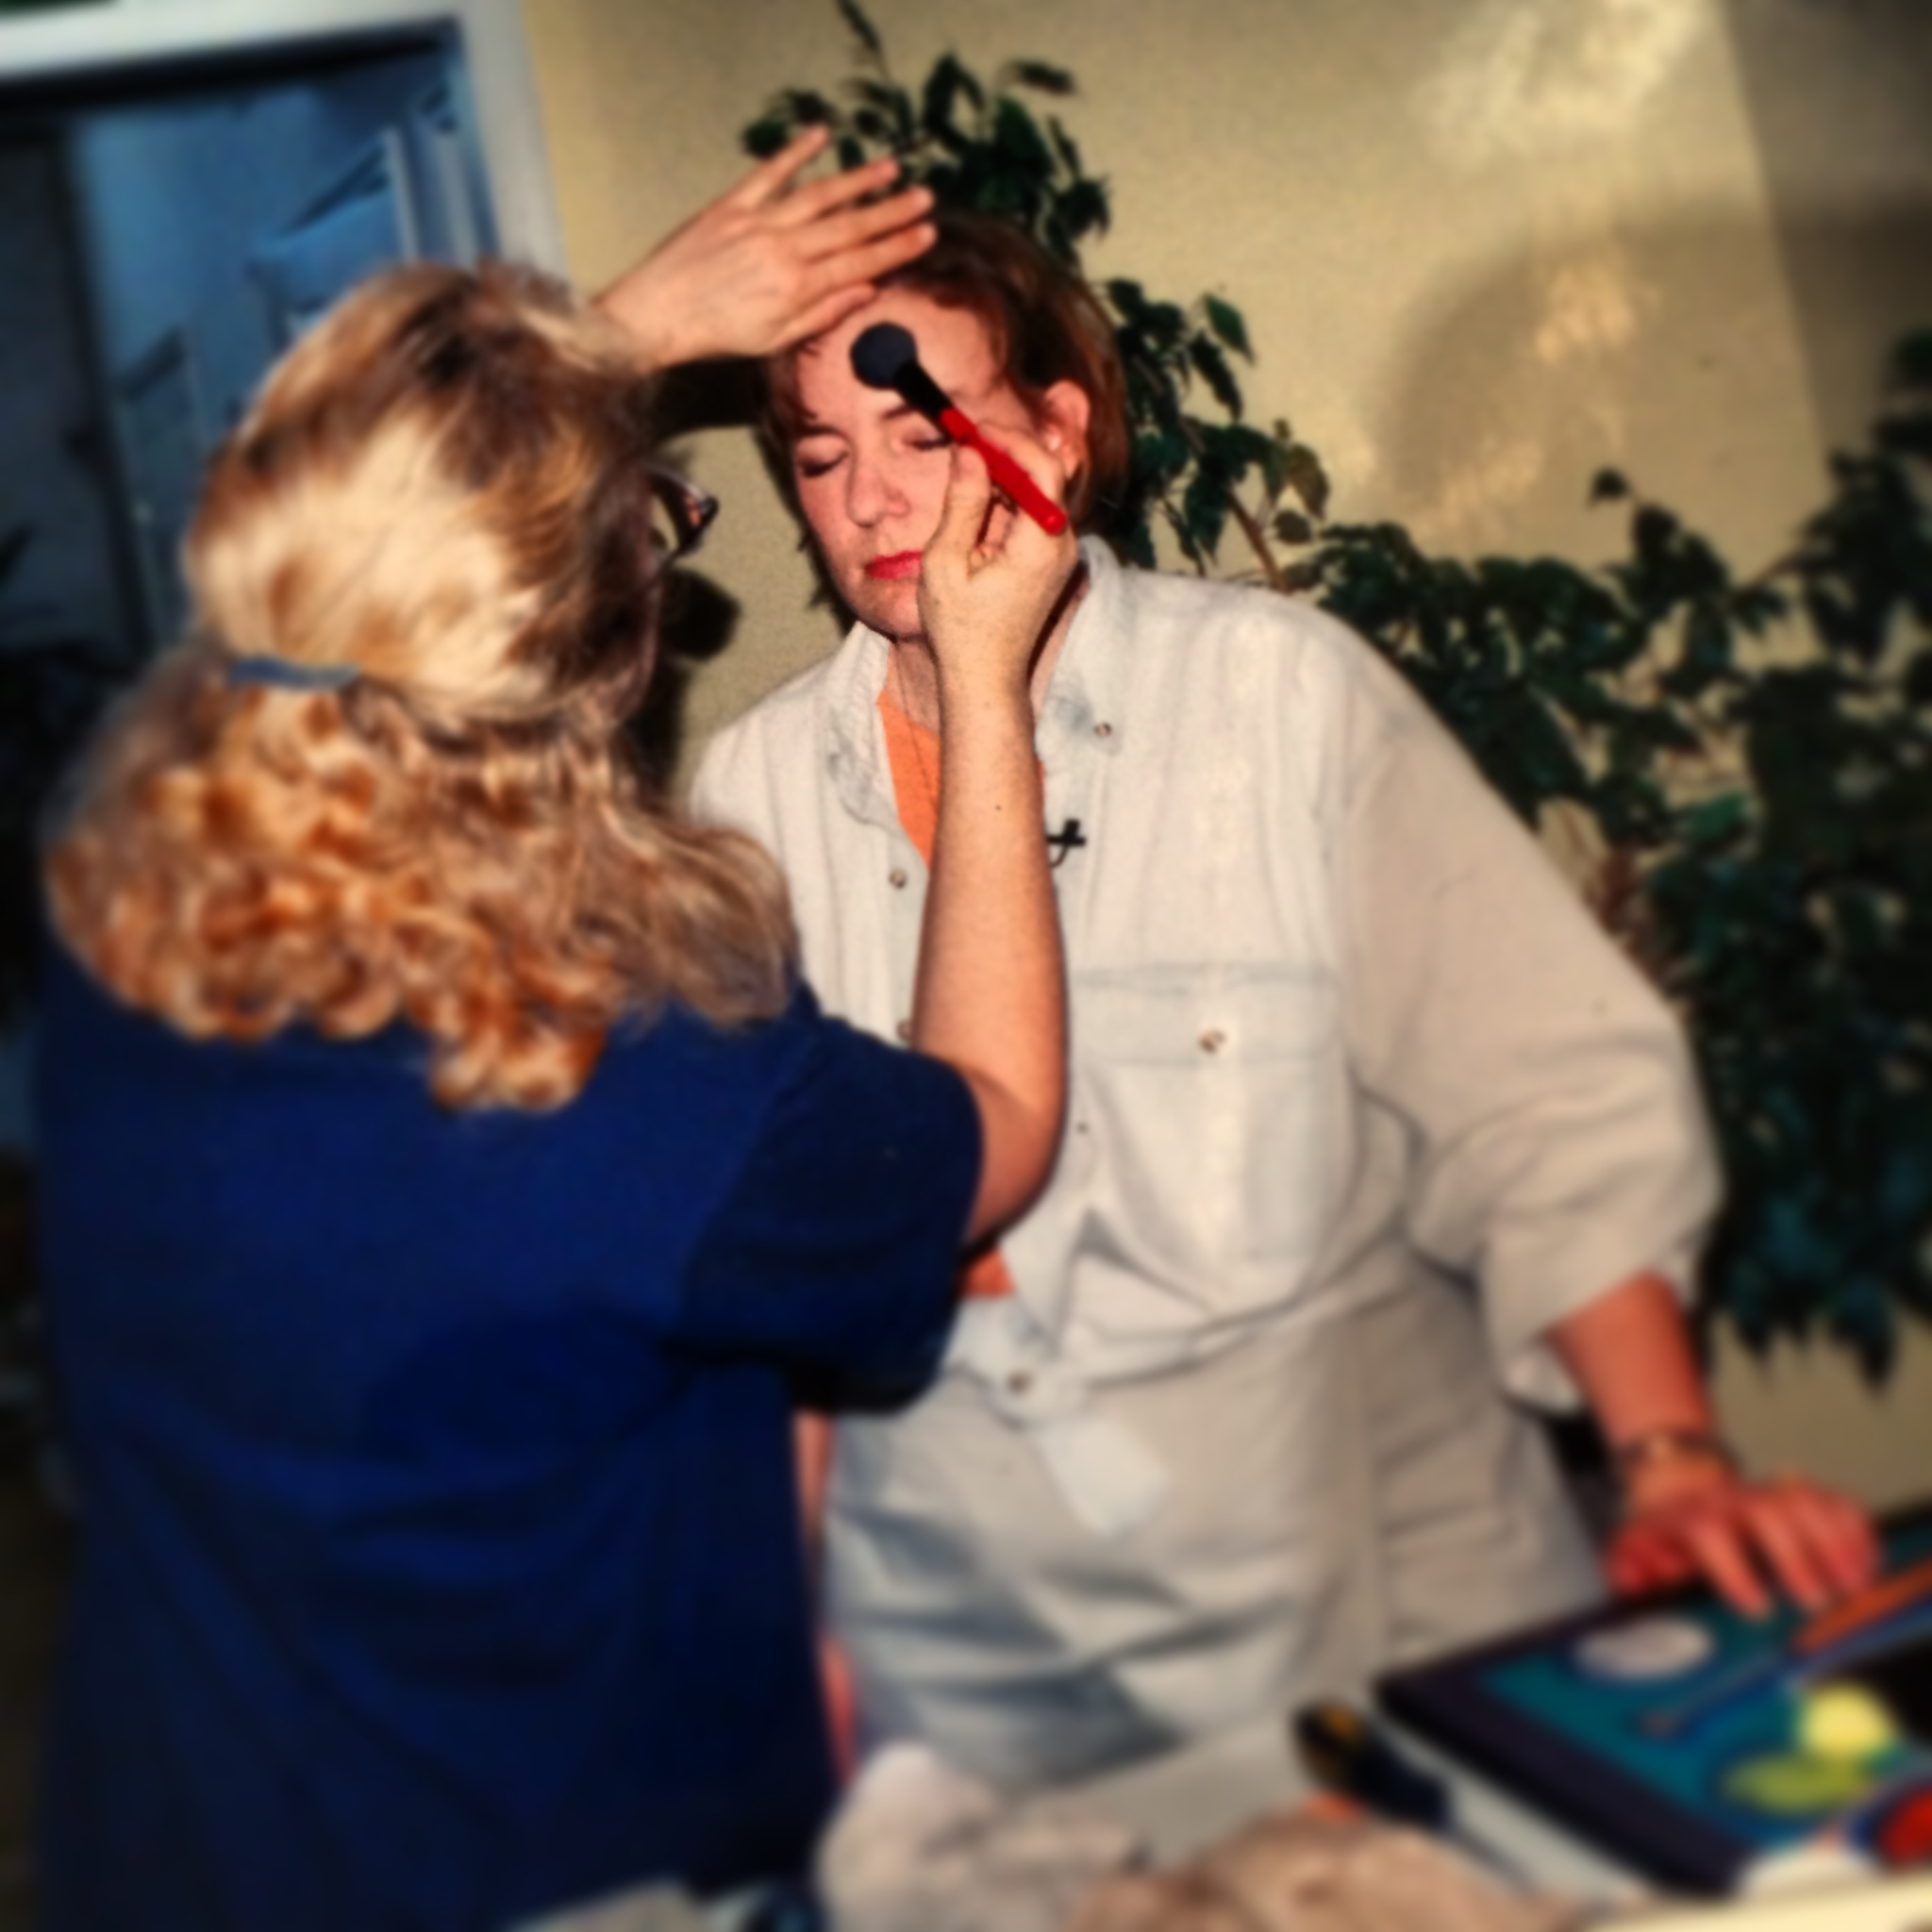 MAKEUP! I have a nose that insists on being a shinning superstar. With HGTV, they were thorough professionals.